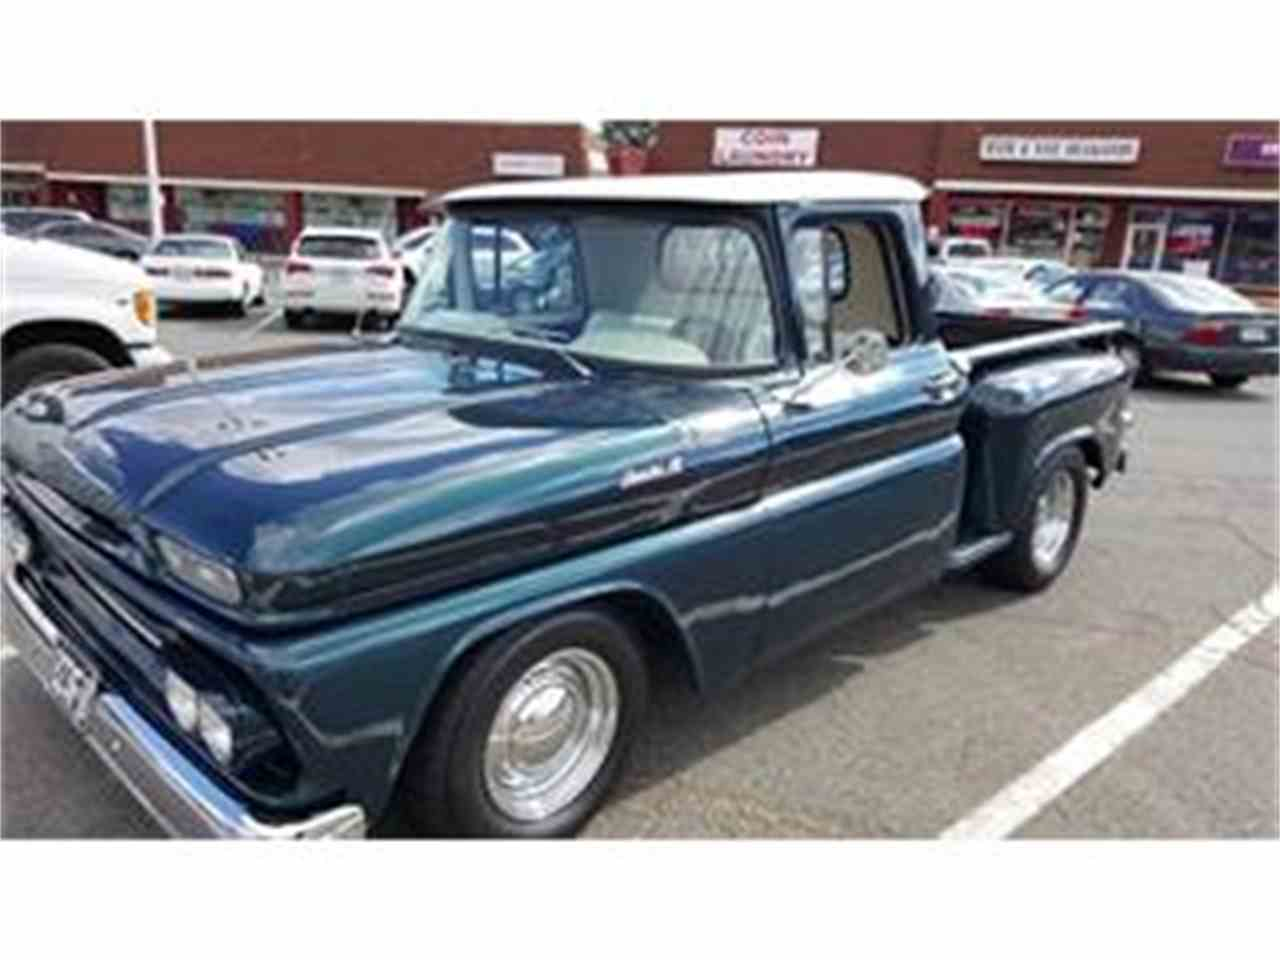 Large Picture of 1961 Chevrolet Apache located in WOODBRIDGE Virginia - $15,600.00 Offered by a Private Seller - FZ6U